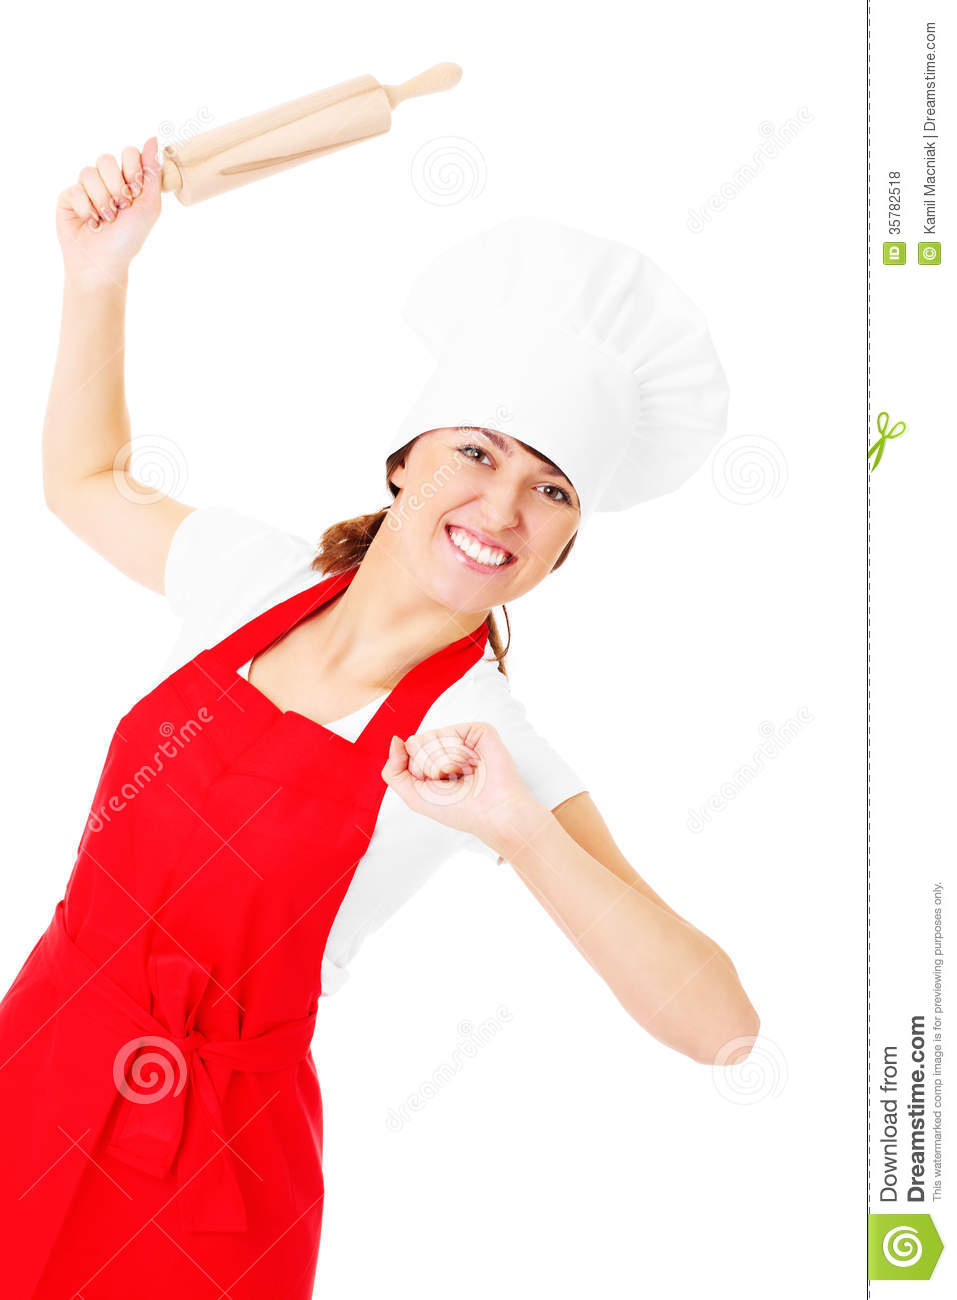 Is There A Chef In The Kitchen? Stock Photo - Image of happy ...